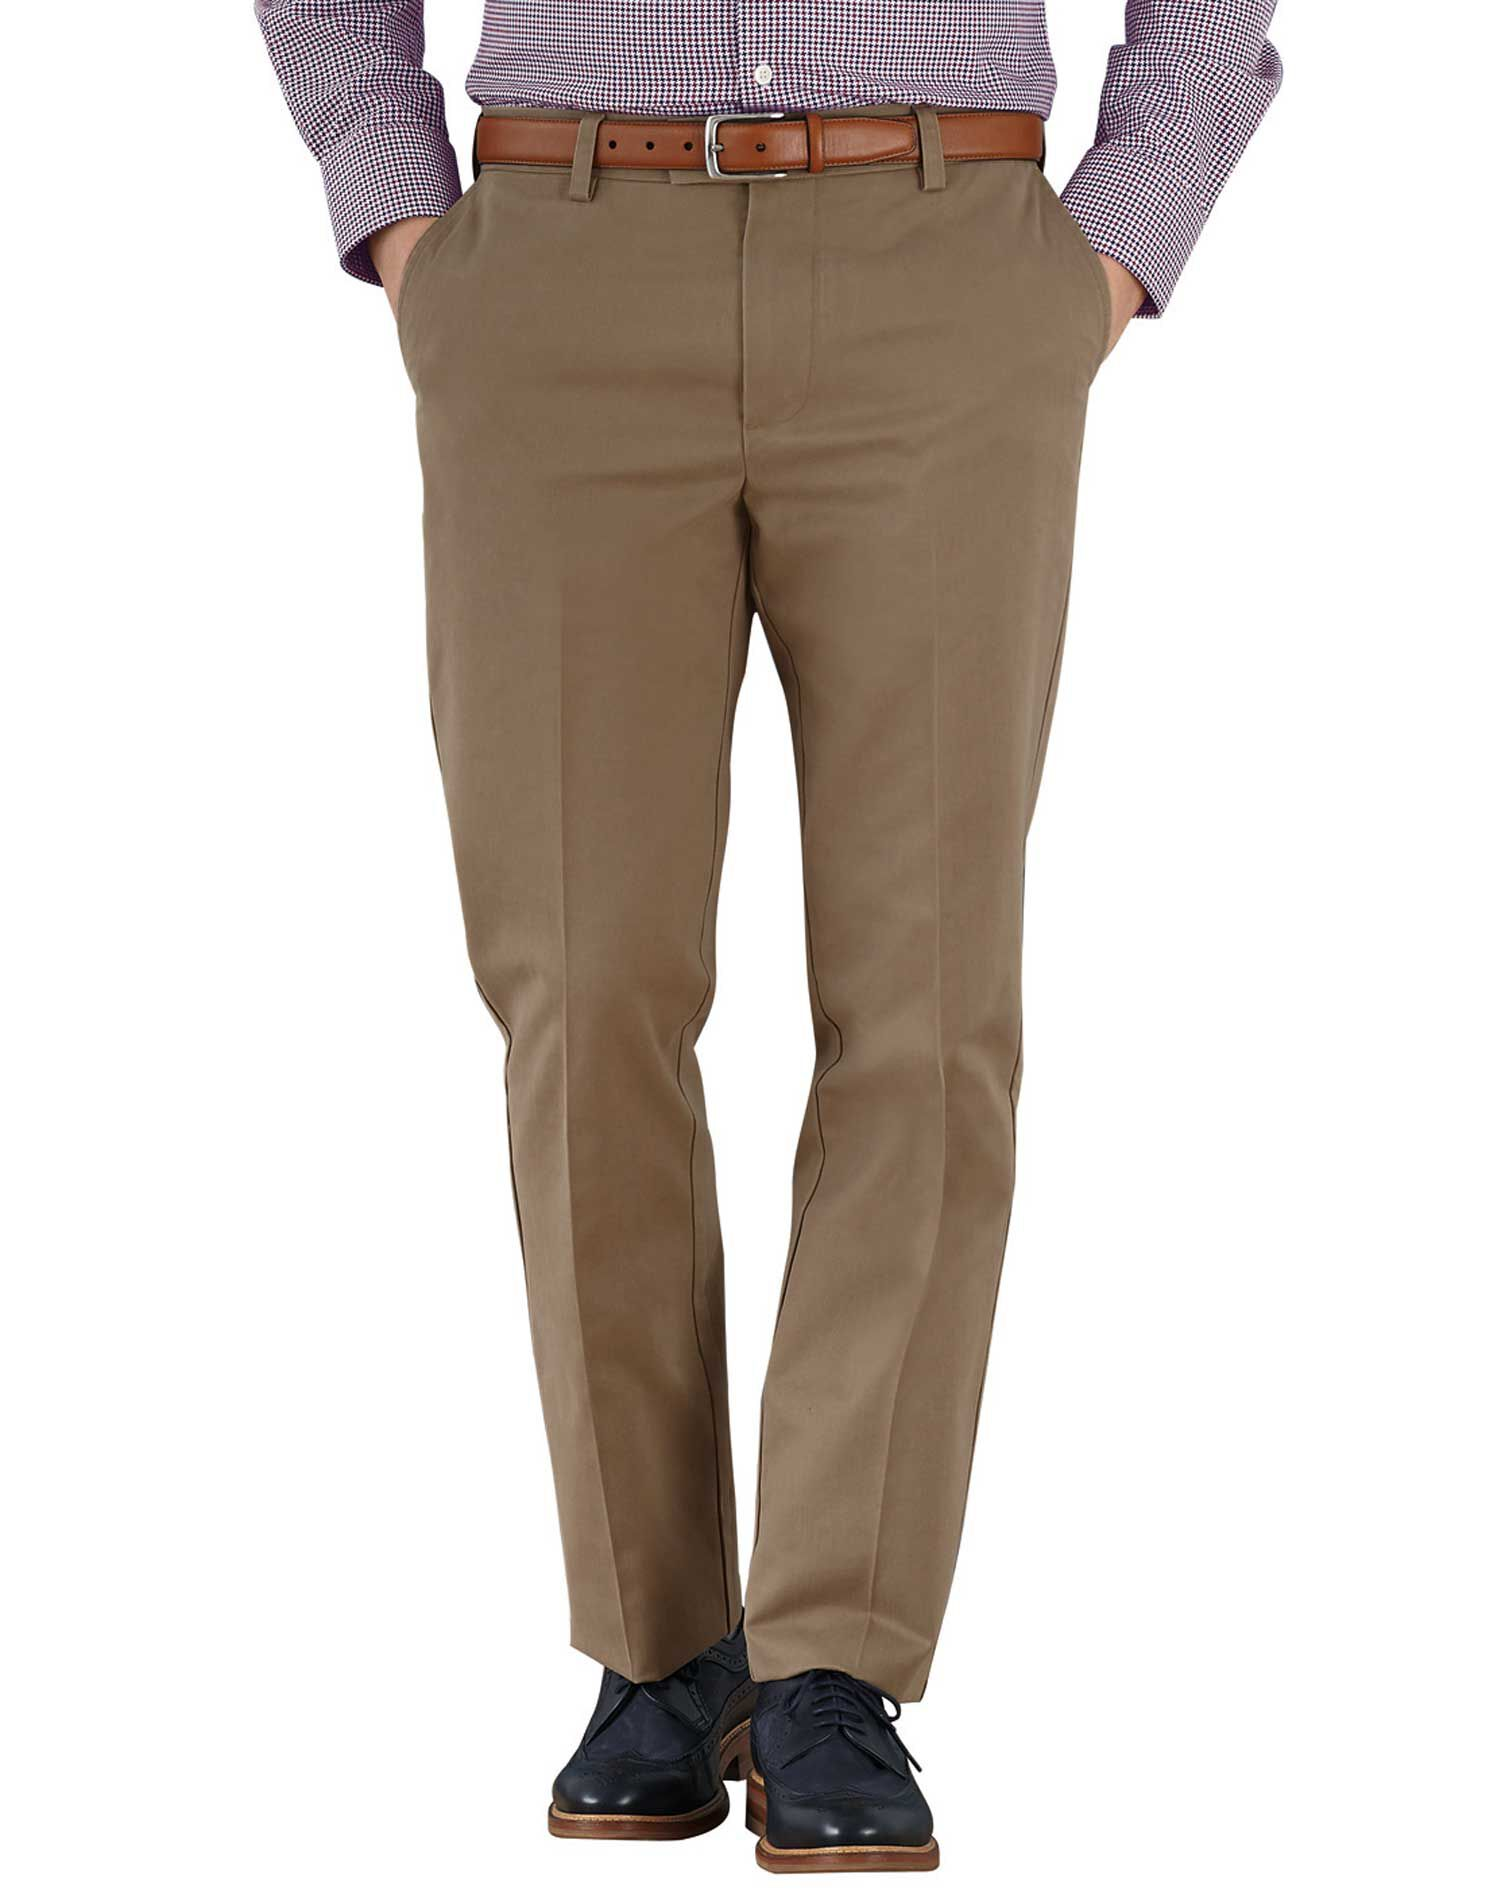 Tan Slim Fit Flat Front Non-Iron Cotton Chino Trousers Size W38 L34 by Charles Tyrwhitt